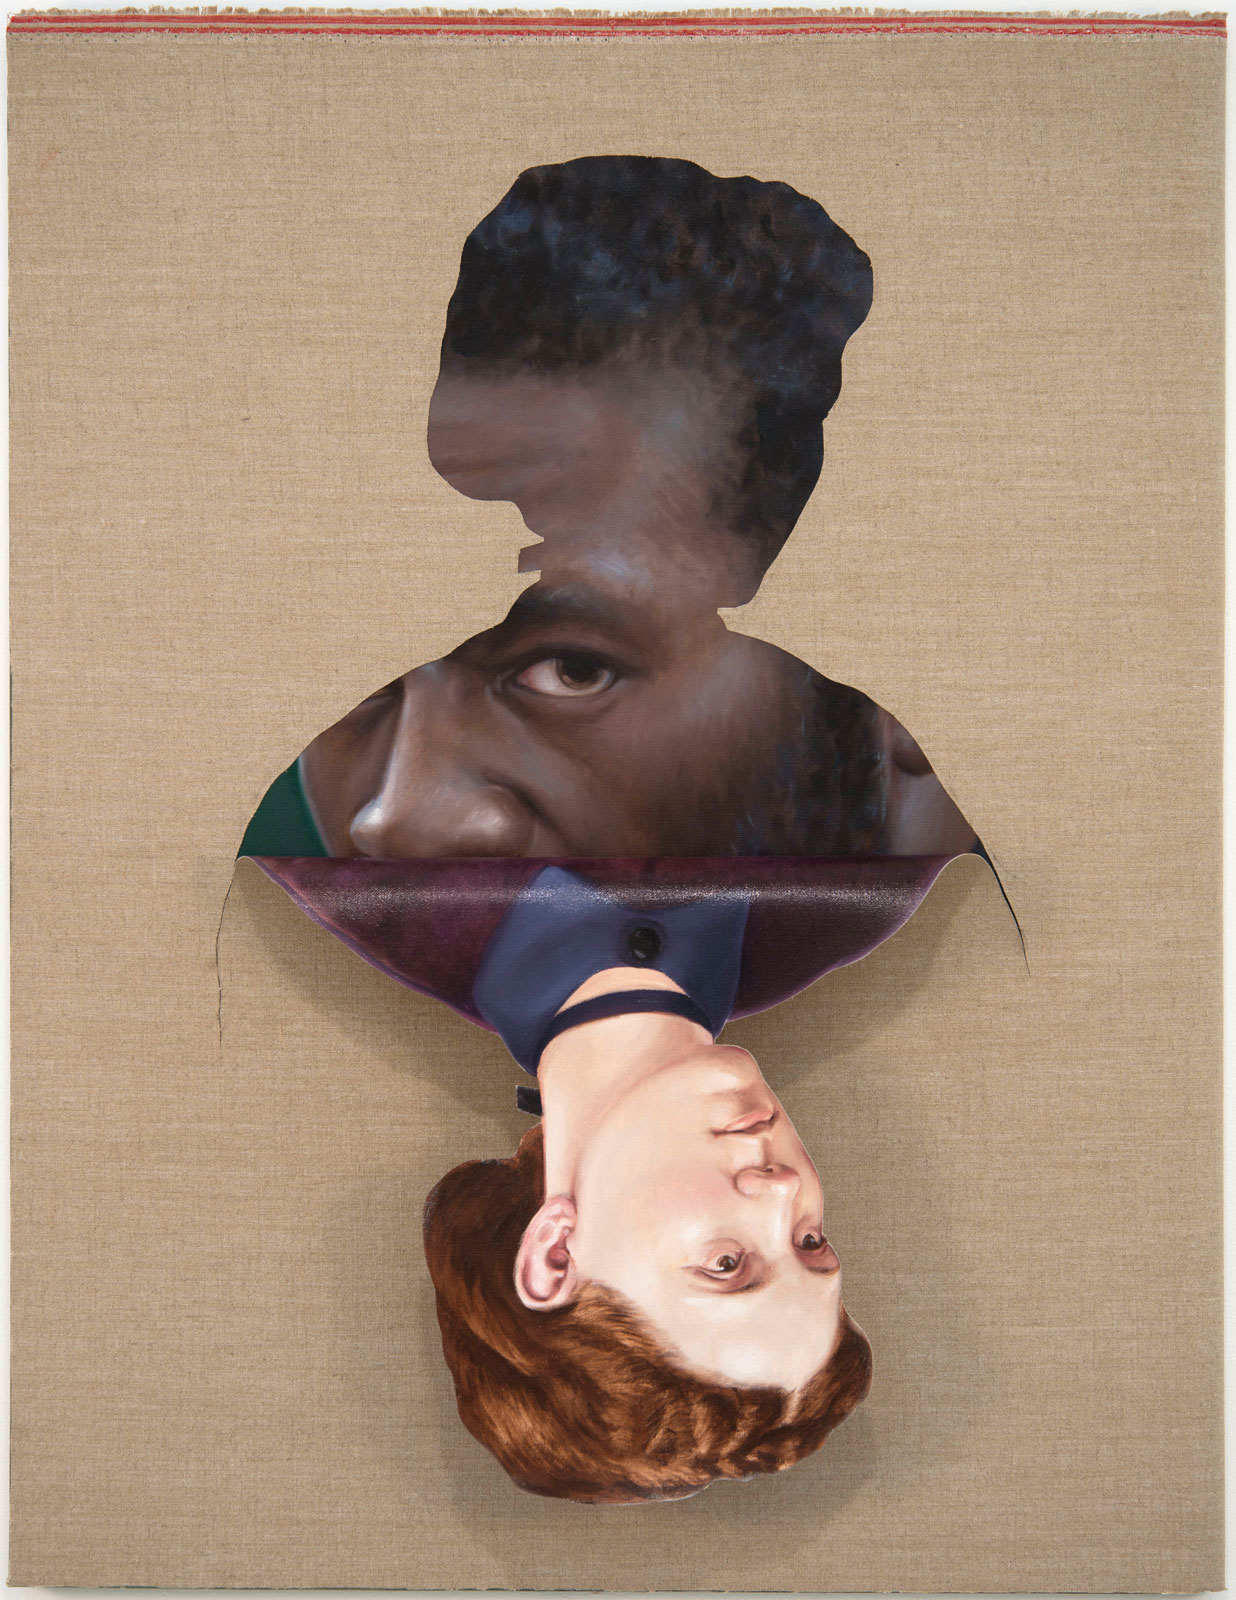 <i>Falling from the Gaze</i> (2014), 48 1/4˝ × 37 3/4˝ × 1 1/2˝, oil on canvas